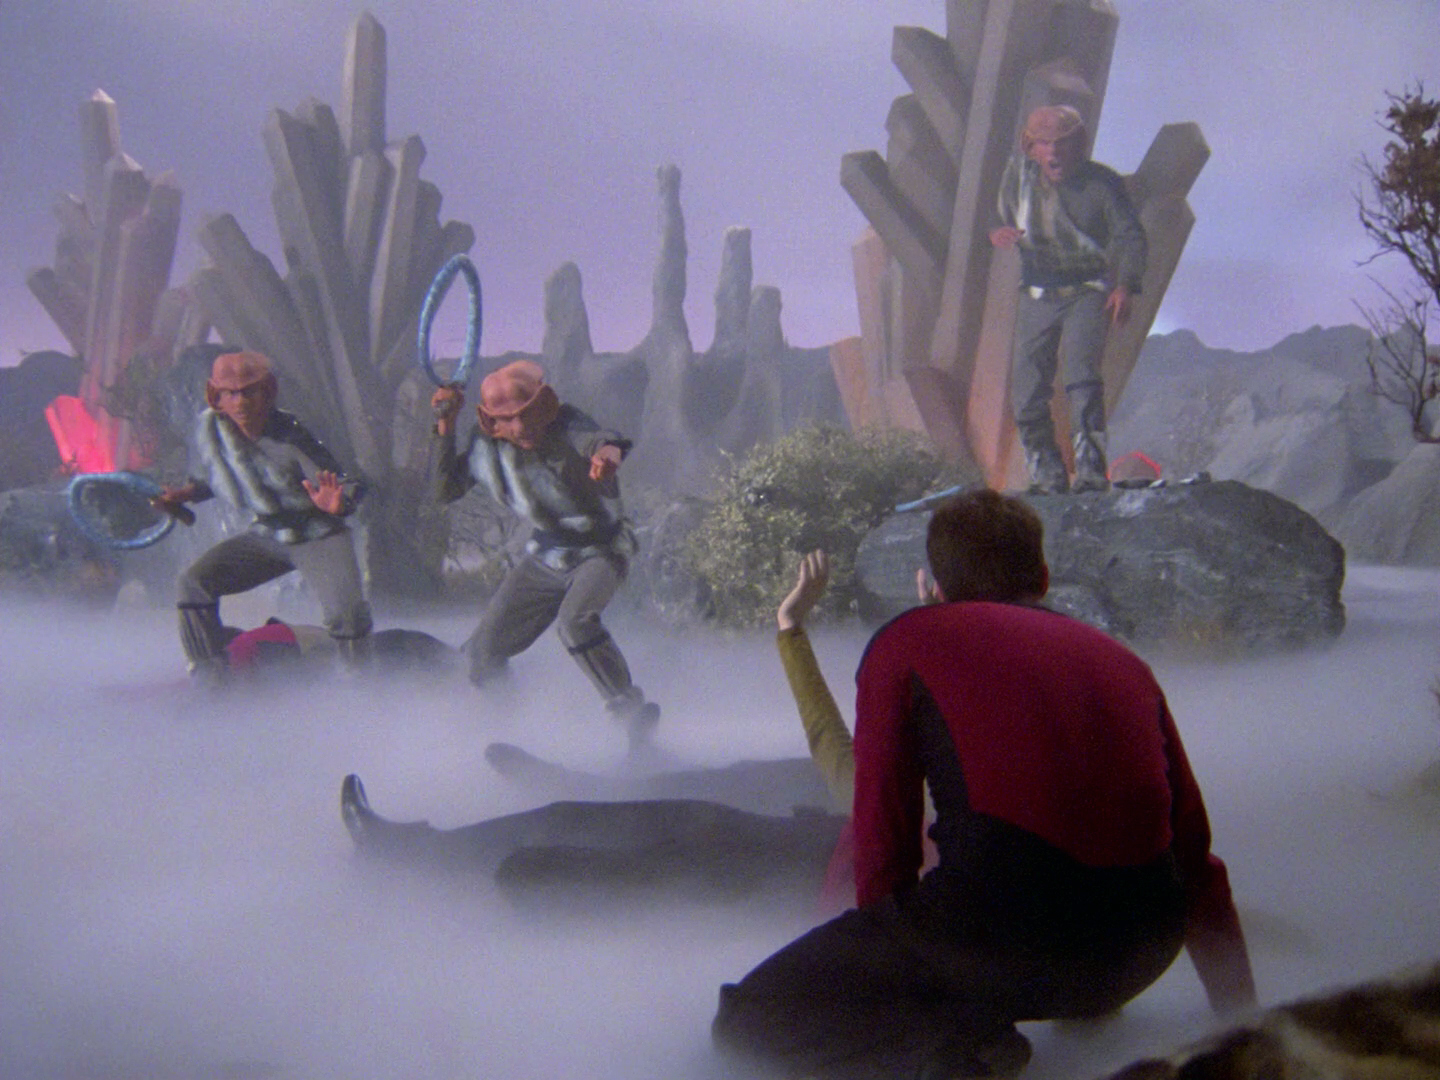 Riker_faces_Ferengi.jpg